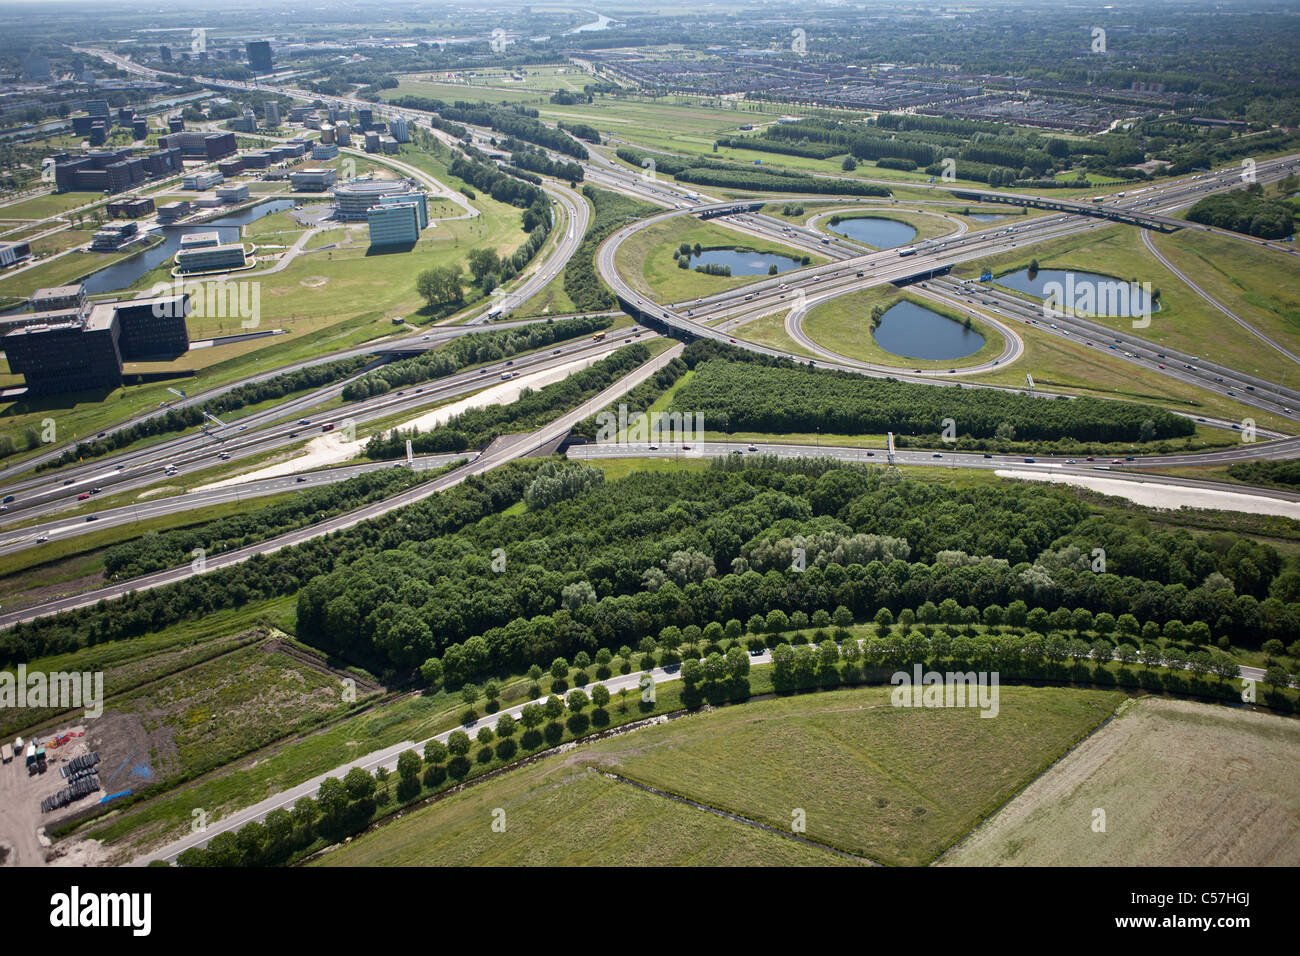 The Netherlands, Utrecht, Cloverleaf at Oudenrijn. Highway called A2 and A12. Aerial. - Stock Image